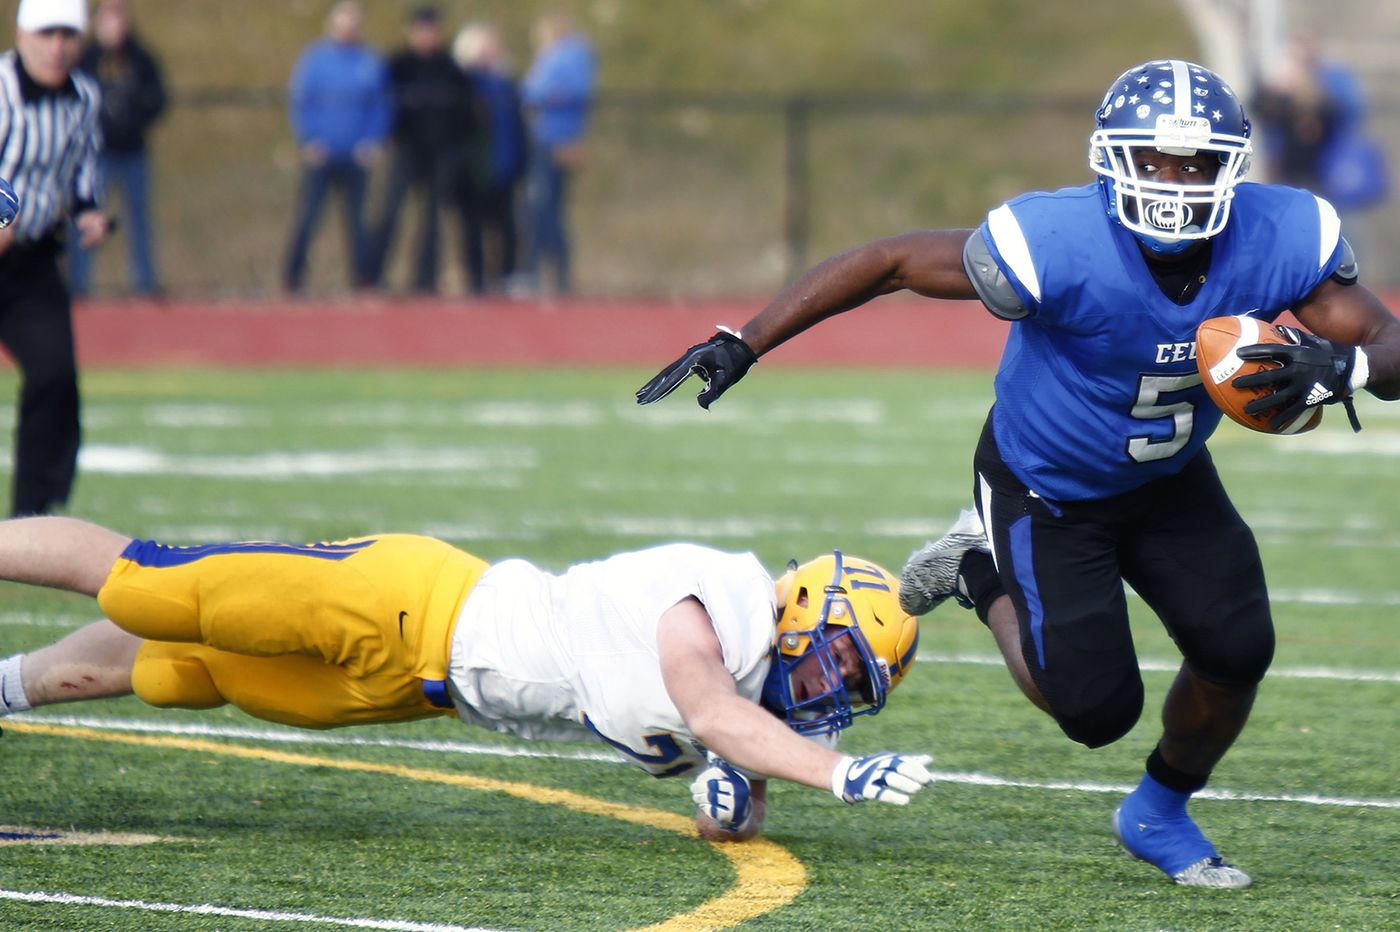 Pa. writers' Class 5A, 3A, and A all-state football teams: Conwell-Egan's Patrick Garwo is among the honorees